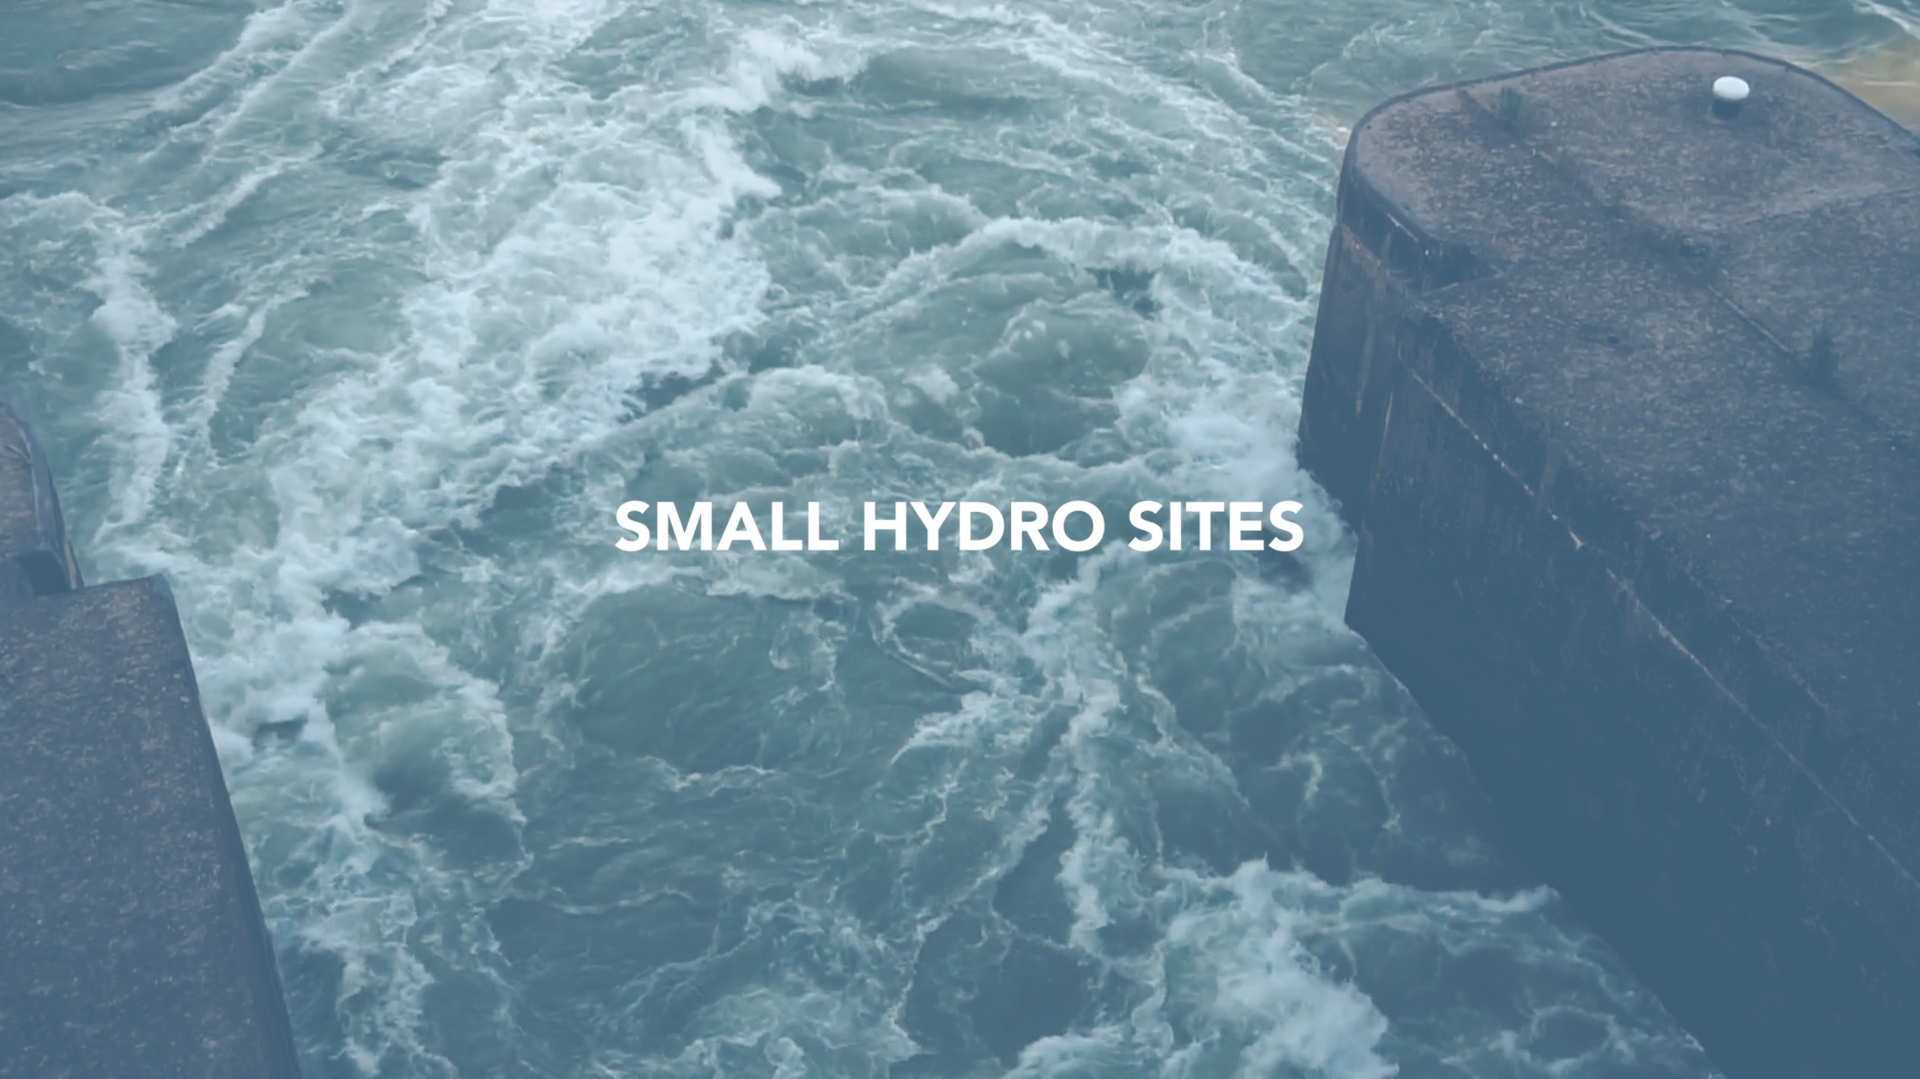 Small or Low Head Hydro Site Applications